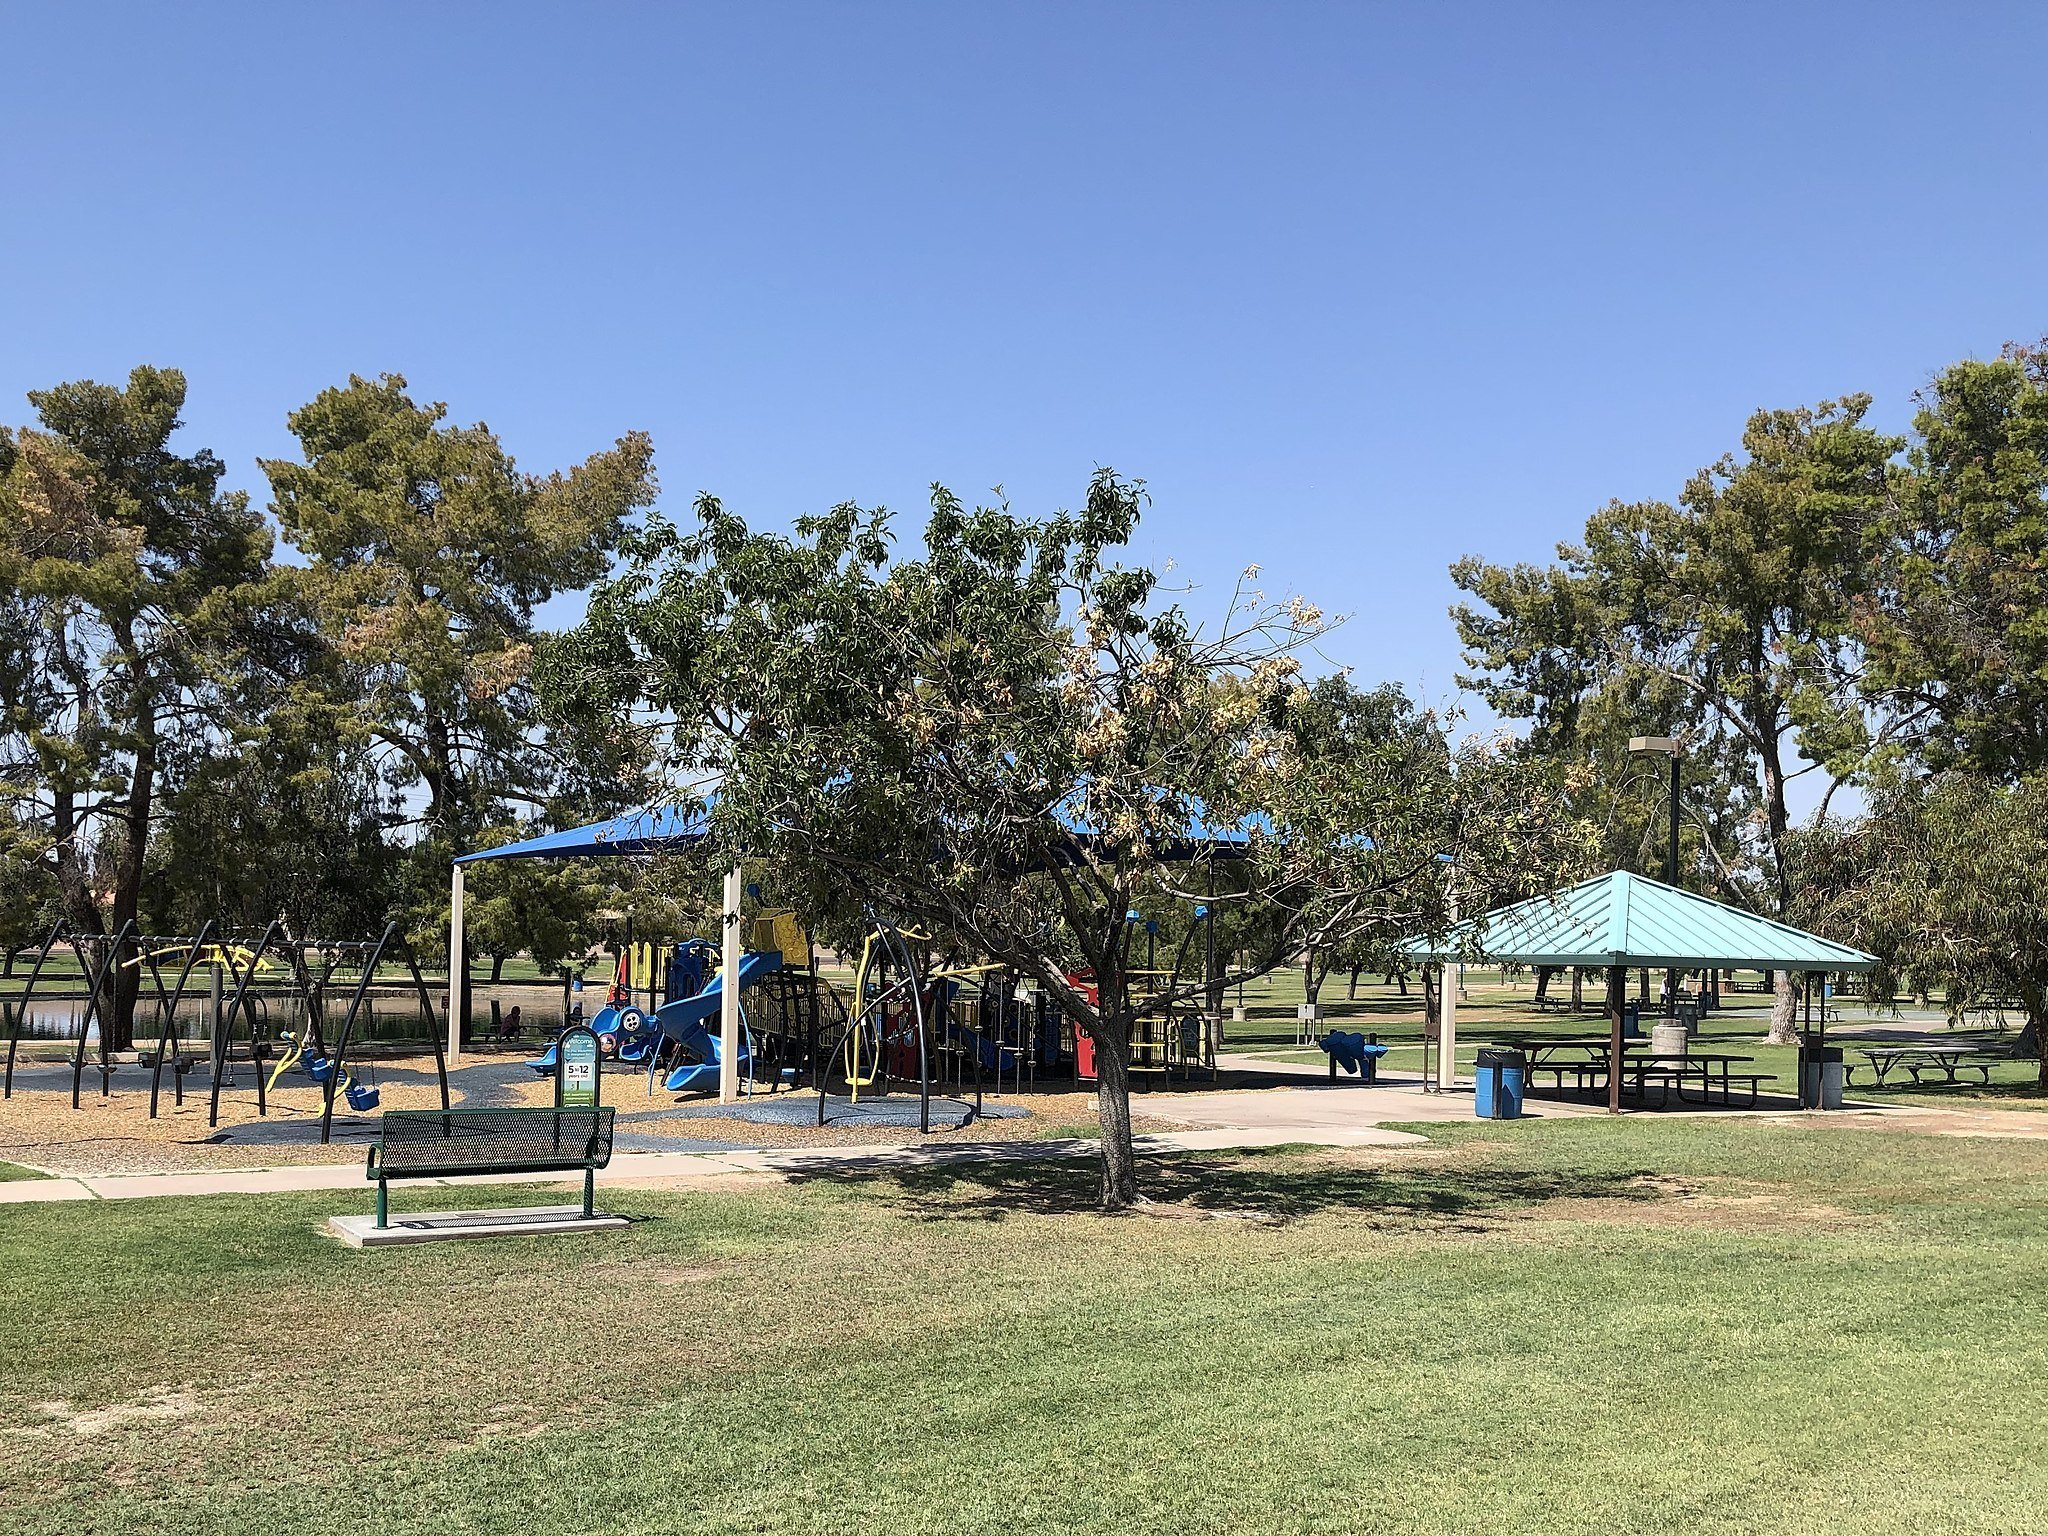 Scottsdale outdoor activities at wheelchair-accessible playground at Chaparral Park